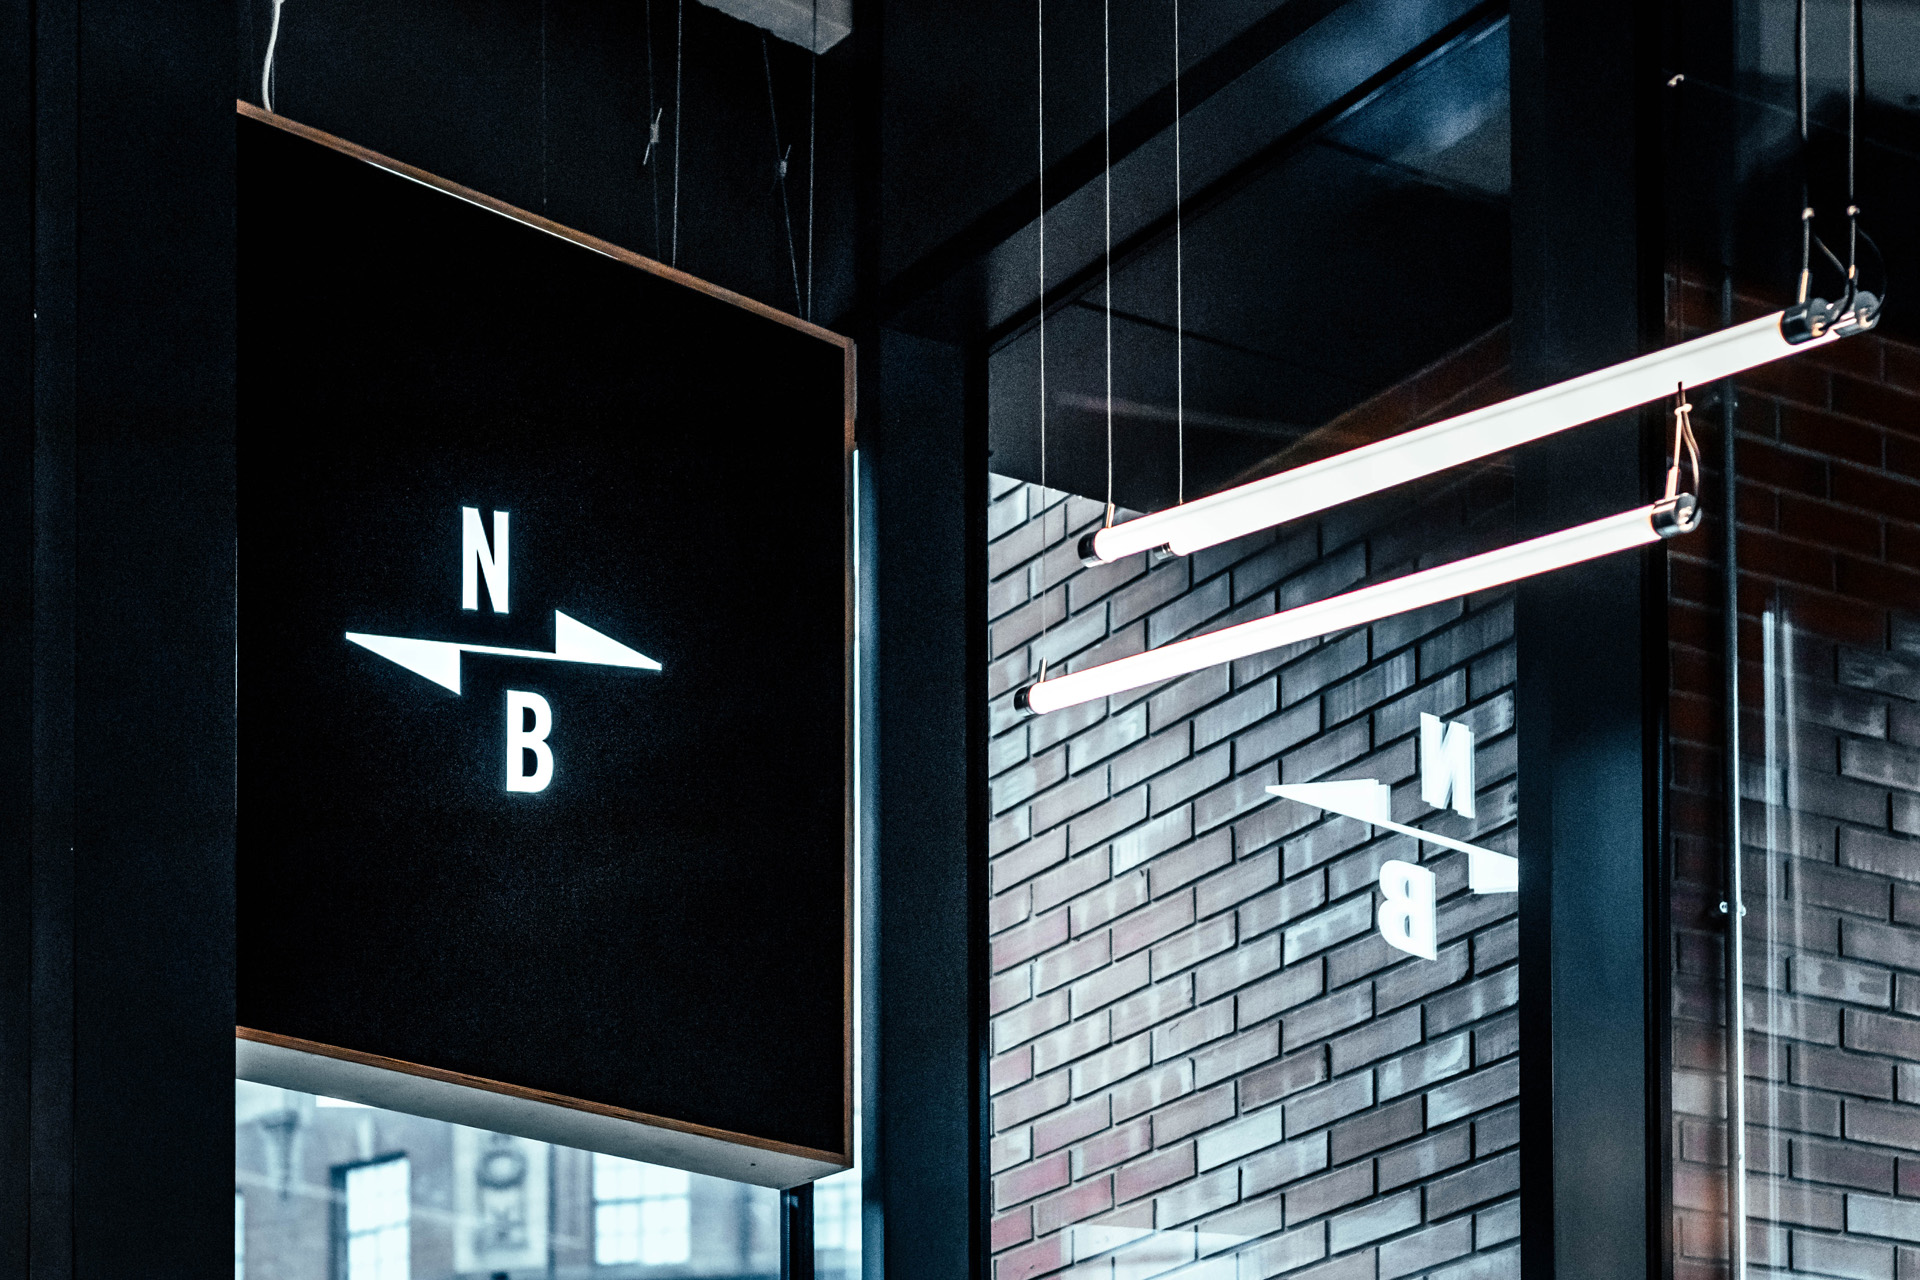 Instagrammable restaurant design to make your business stand out //  North Brewing Co, Leeds